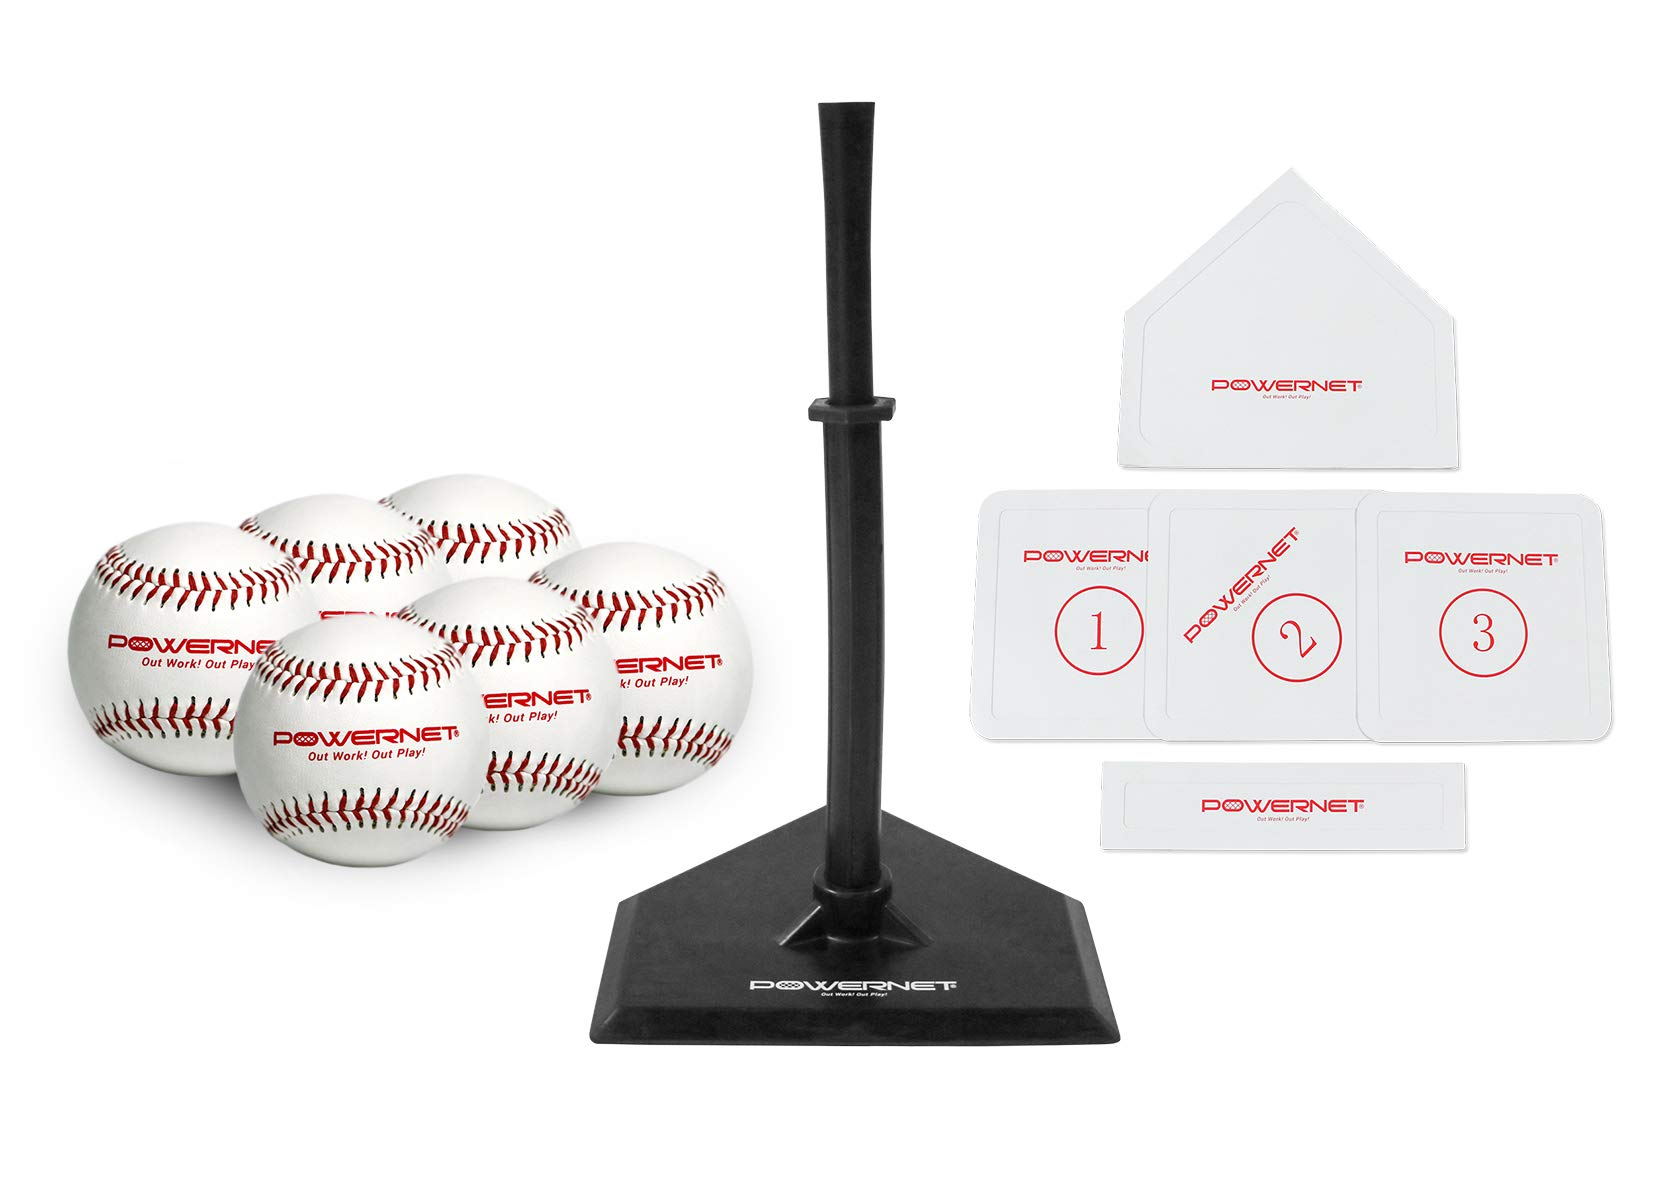 PowerNet Baseball T-Ball Coaching Bundle | 8 Piece Tee-Ball Set Includes 6 Soft Core Baseballs, Adjustable Tee, 5 Throw Down Bases to Coach by PowerNet